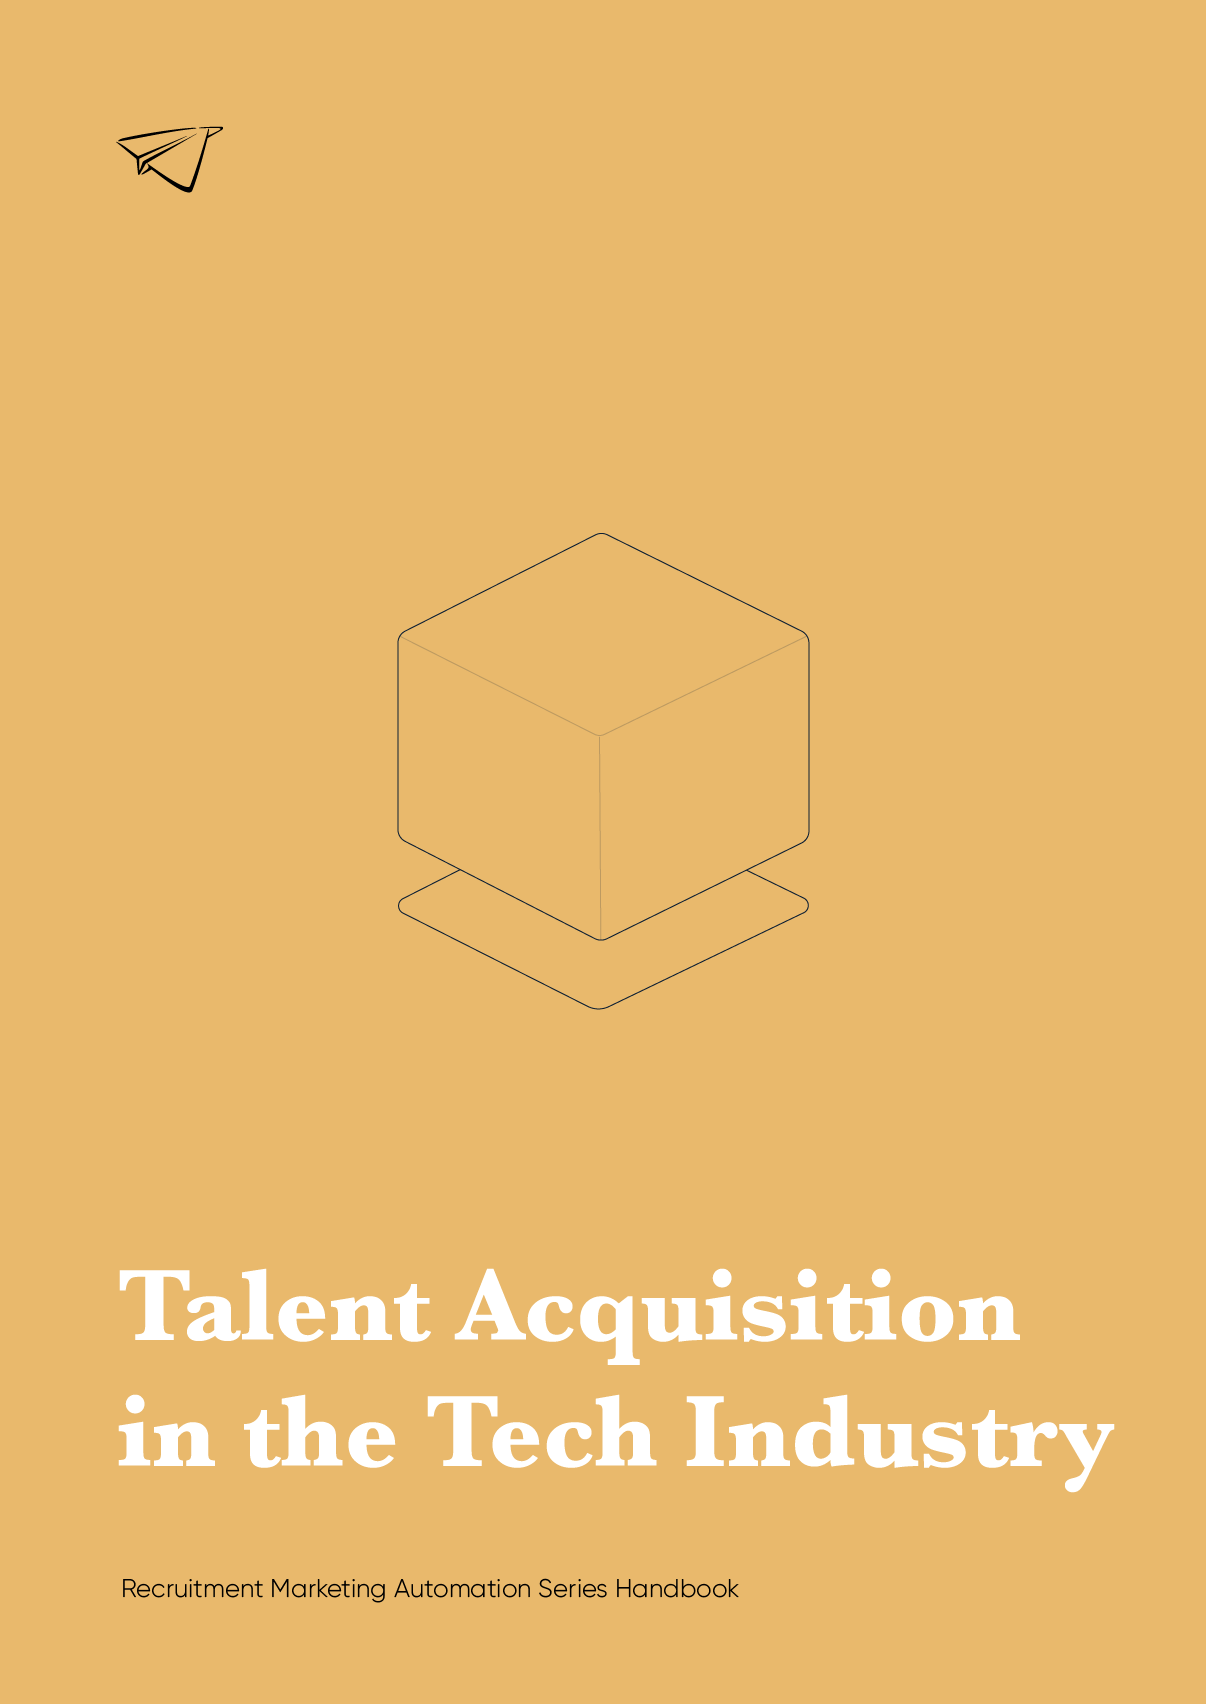 How Technology can jumpstart talent acquisition in the tech industry